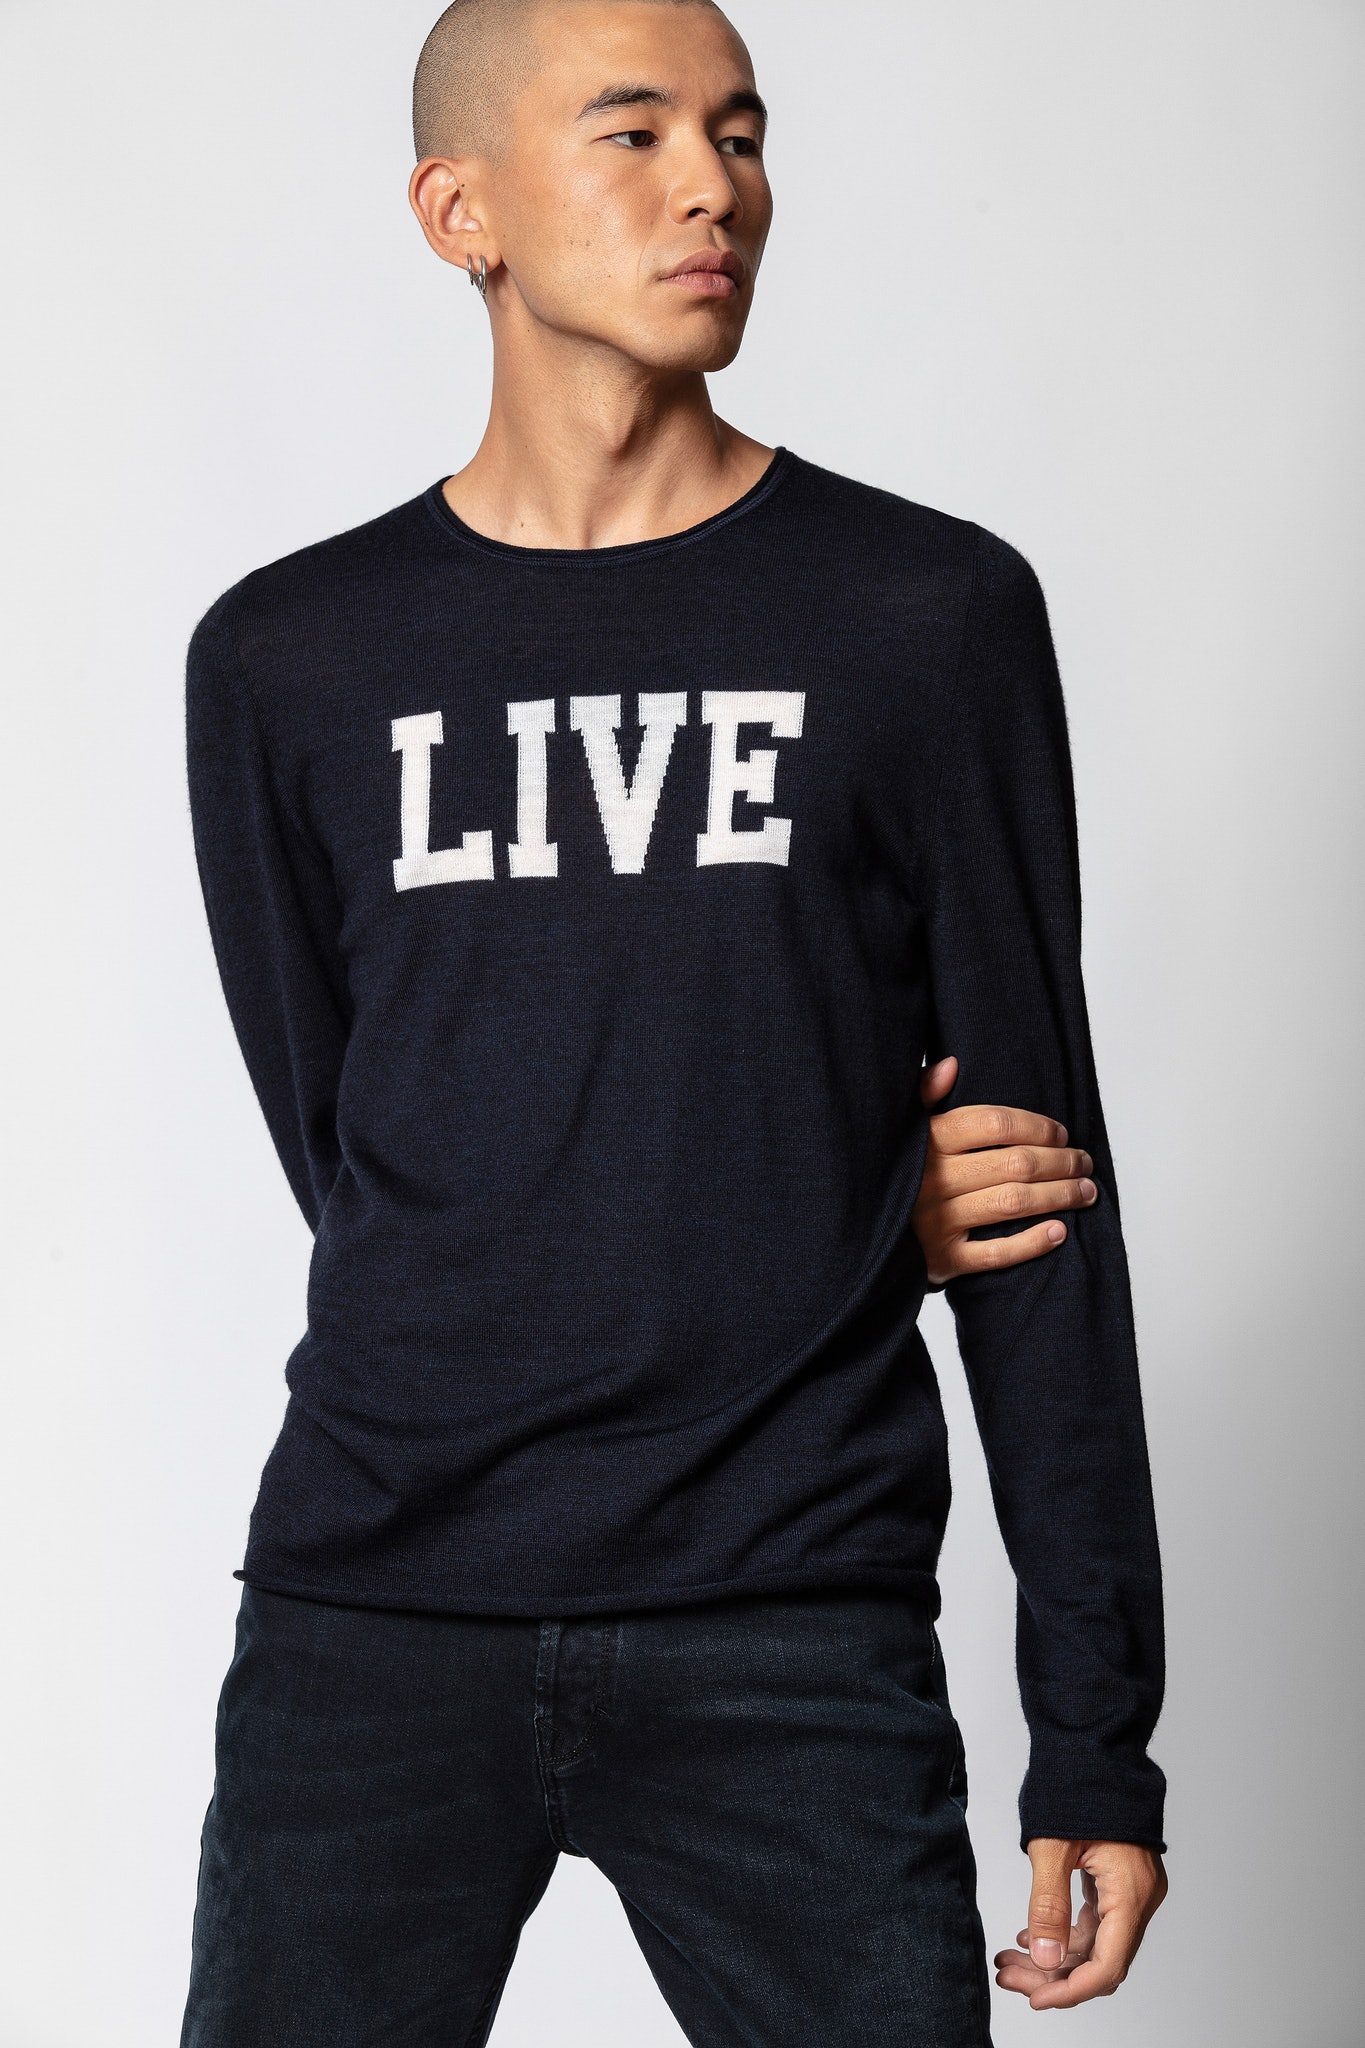 Teiss Live Sweater